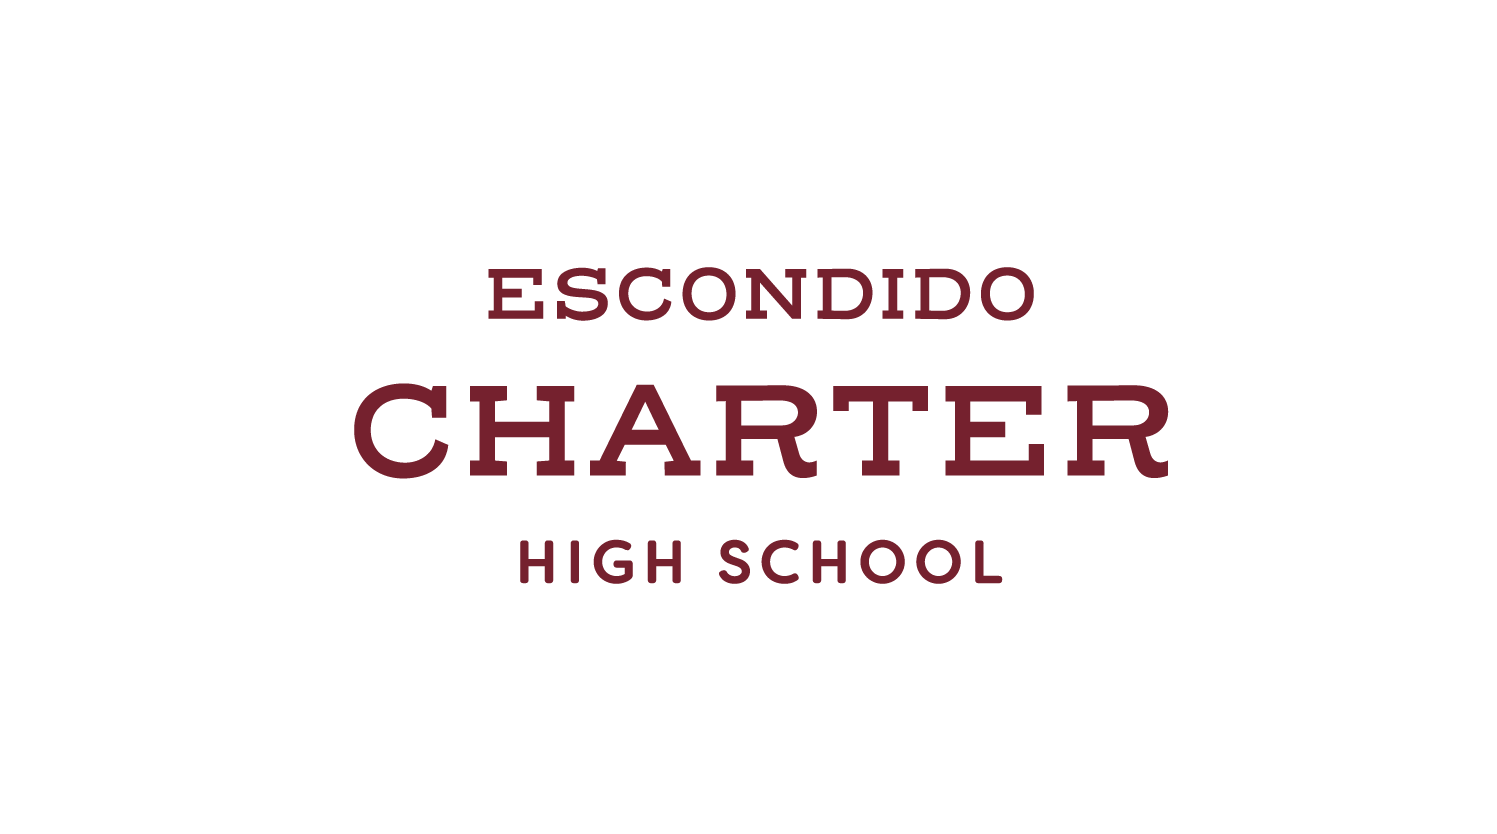 Escondido Charter High School logo